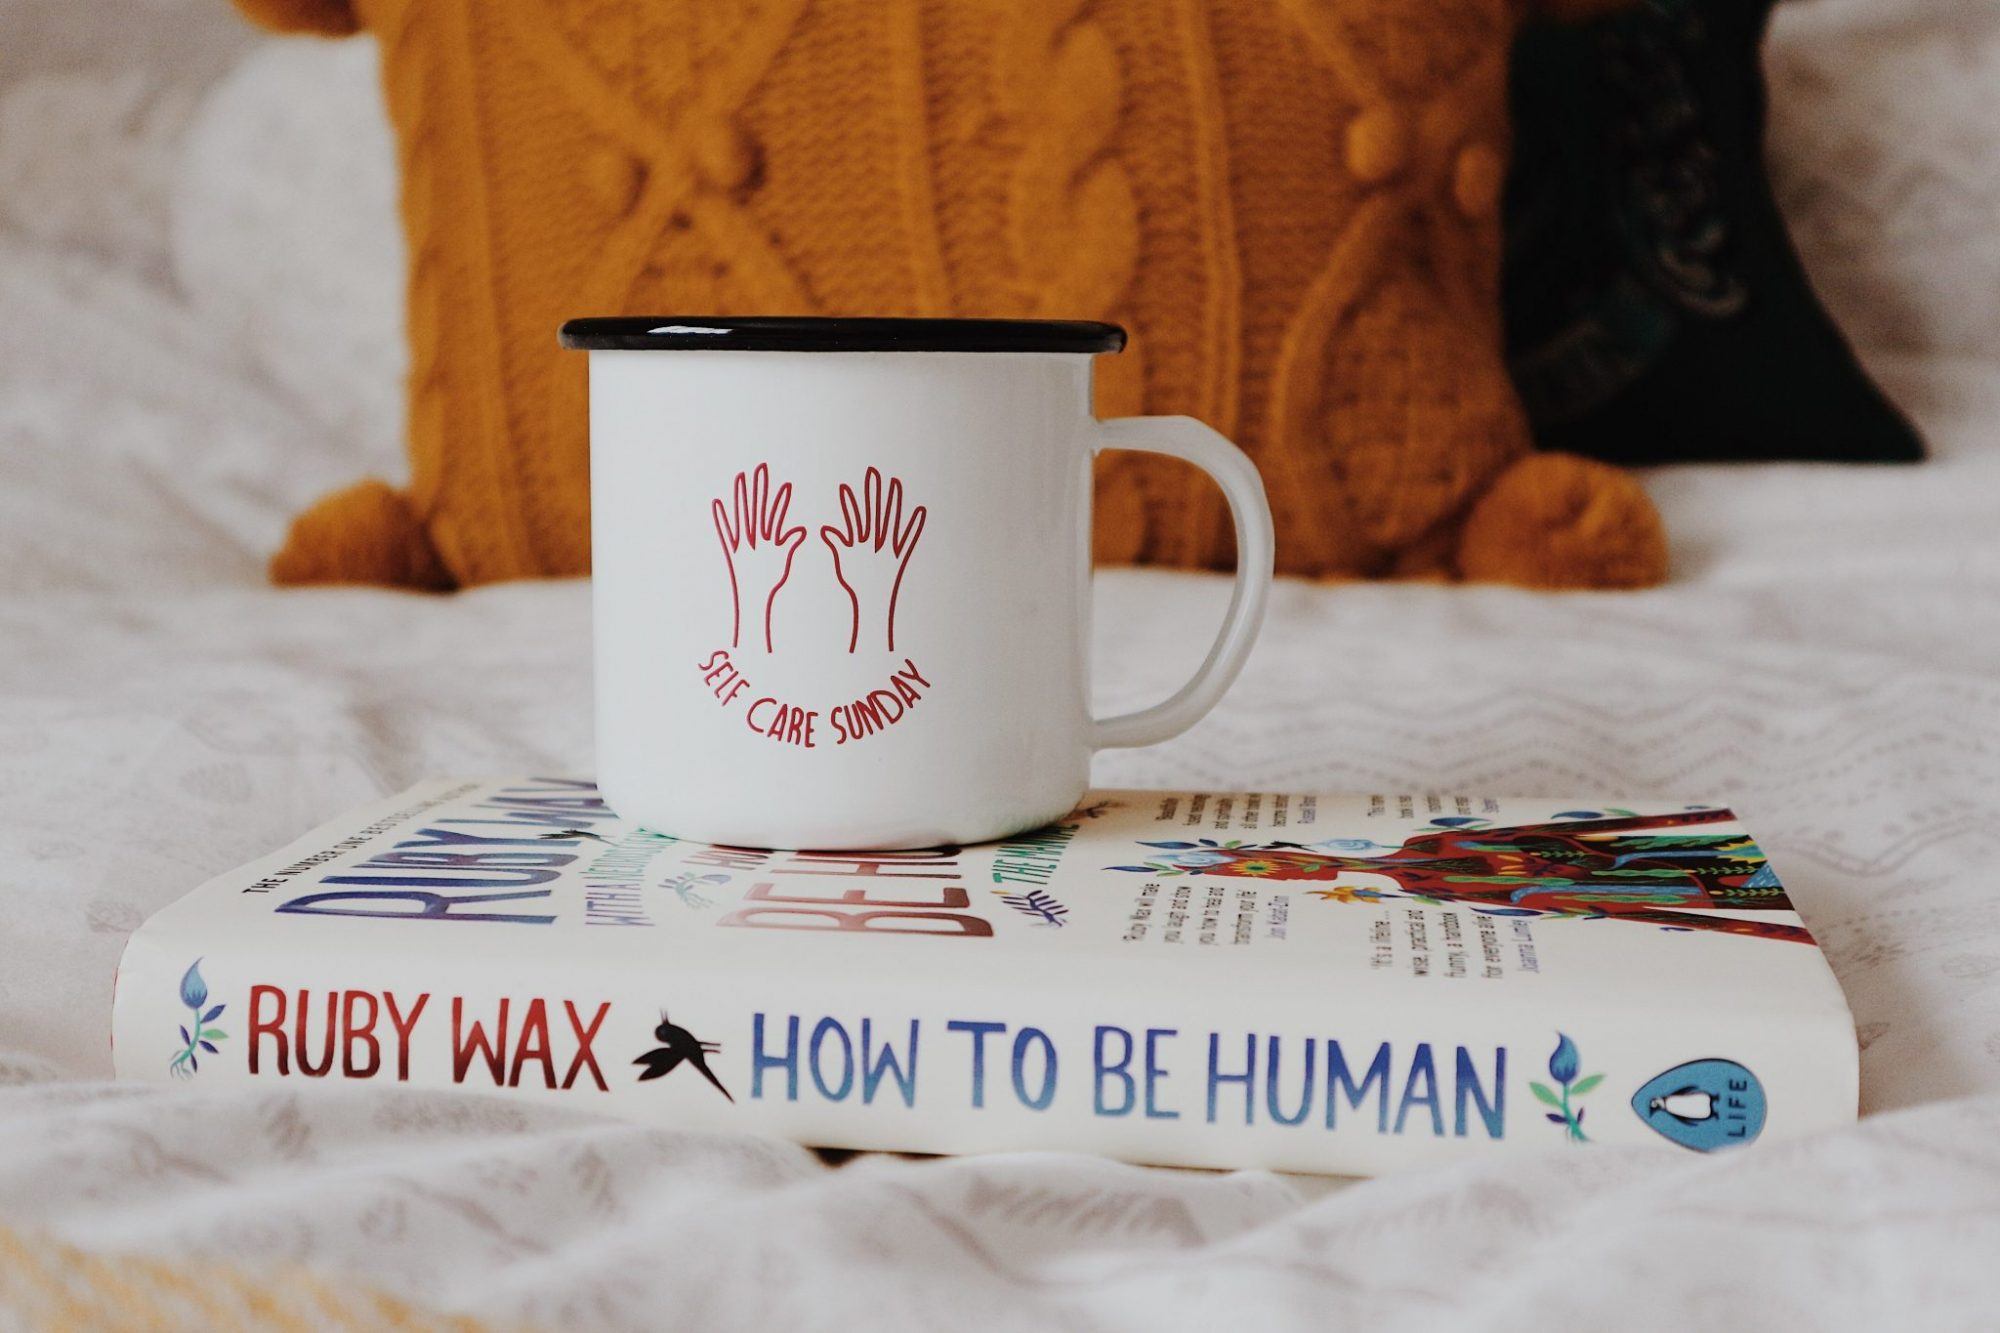 Self Care Sunday Mug + How To Be Human by Ruby Wax Book